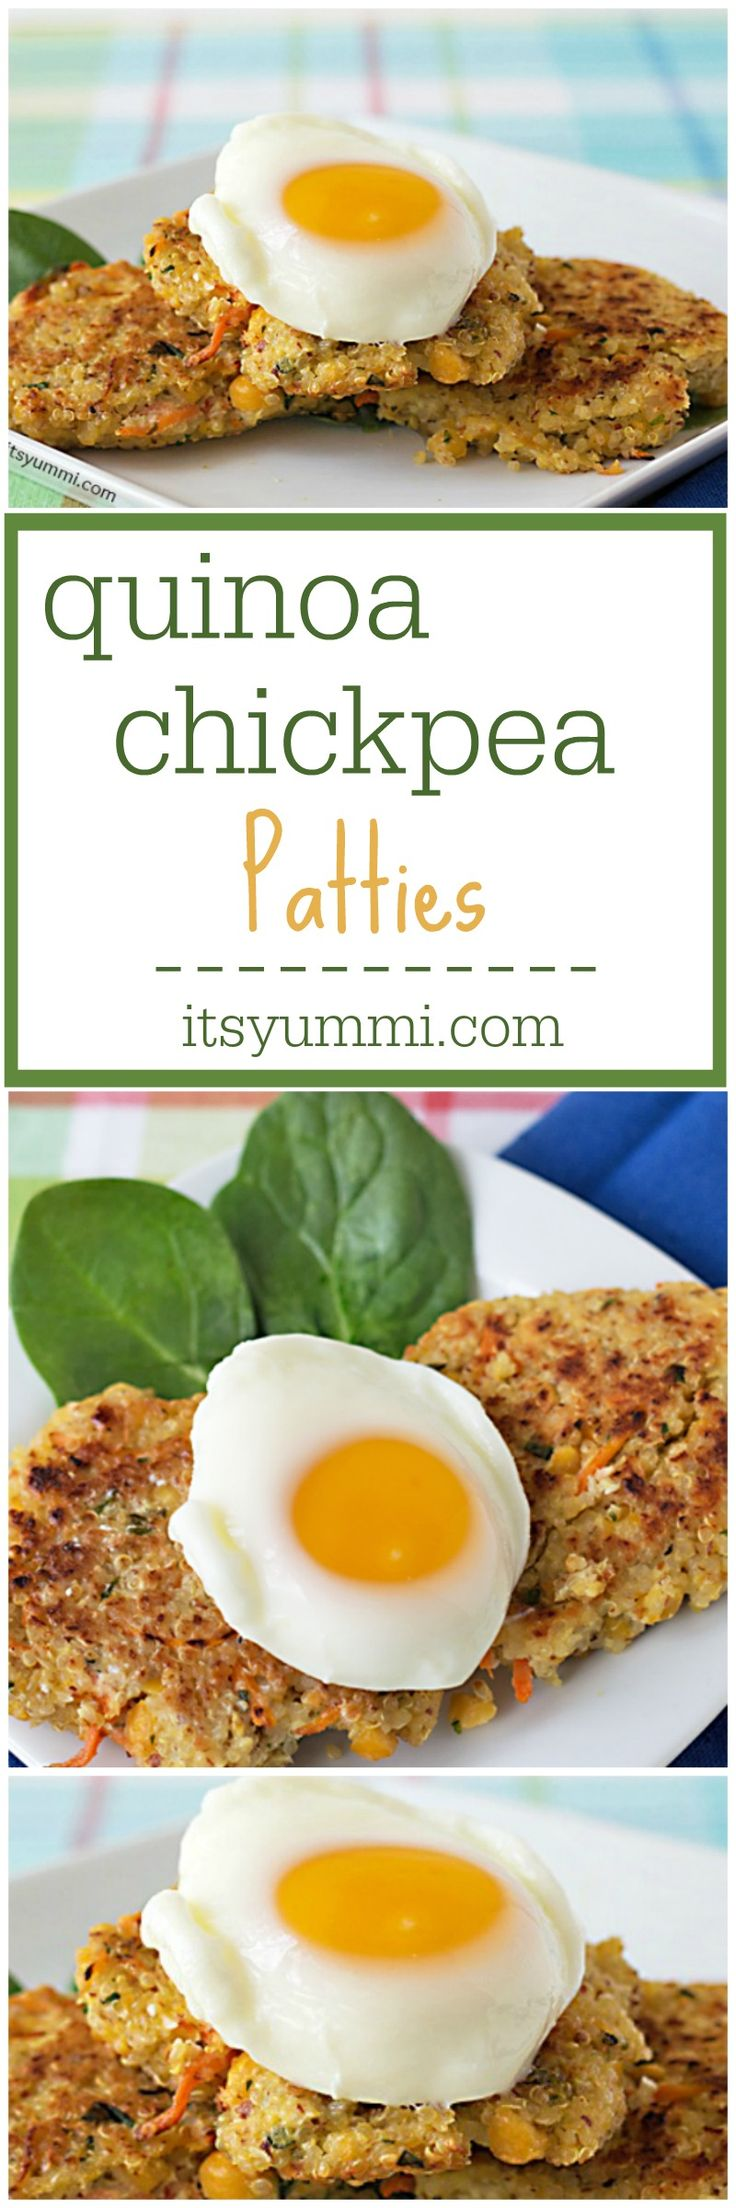 Healthy Recipe ~ Quinoa Chickpea Patties from @itsyummi - Full of protein, fiber, and flavor! They're perfect for Meatless Monday dinner. Vegetarian, gluten free, and dairy free, too.